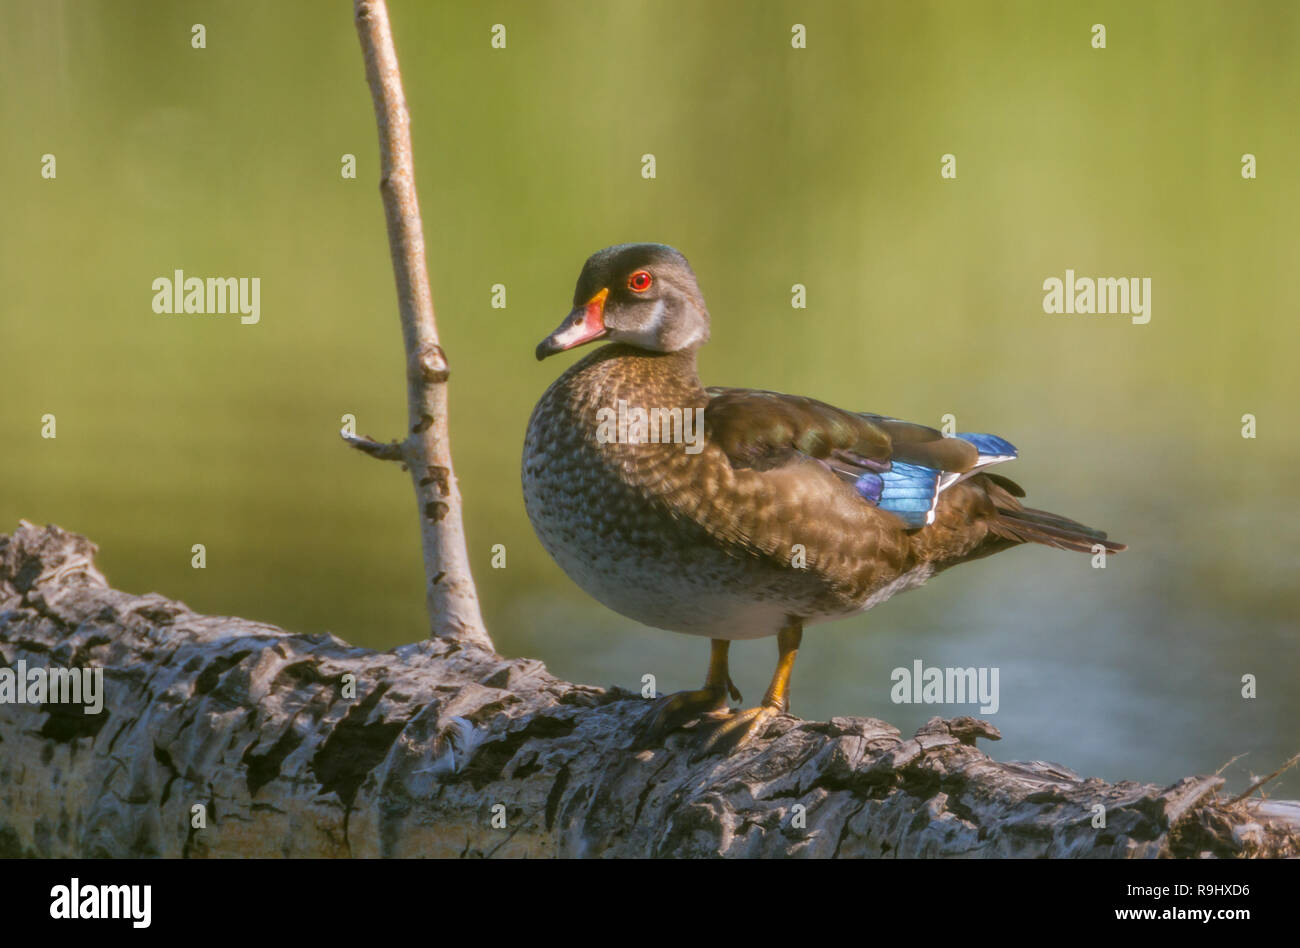 Colourful wood duck standing on fallen tree with water in background at Inglewood Bird Sanctuary in Calgary, Alberta, Canada Stock Photo